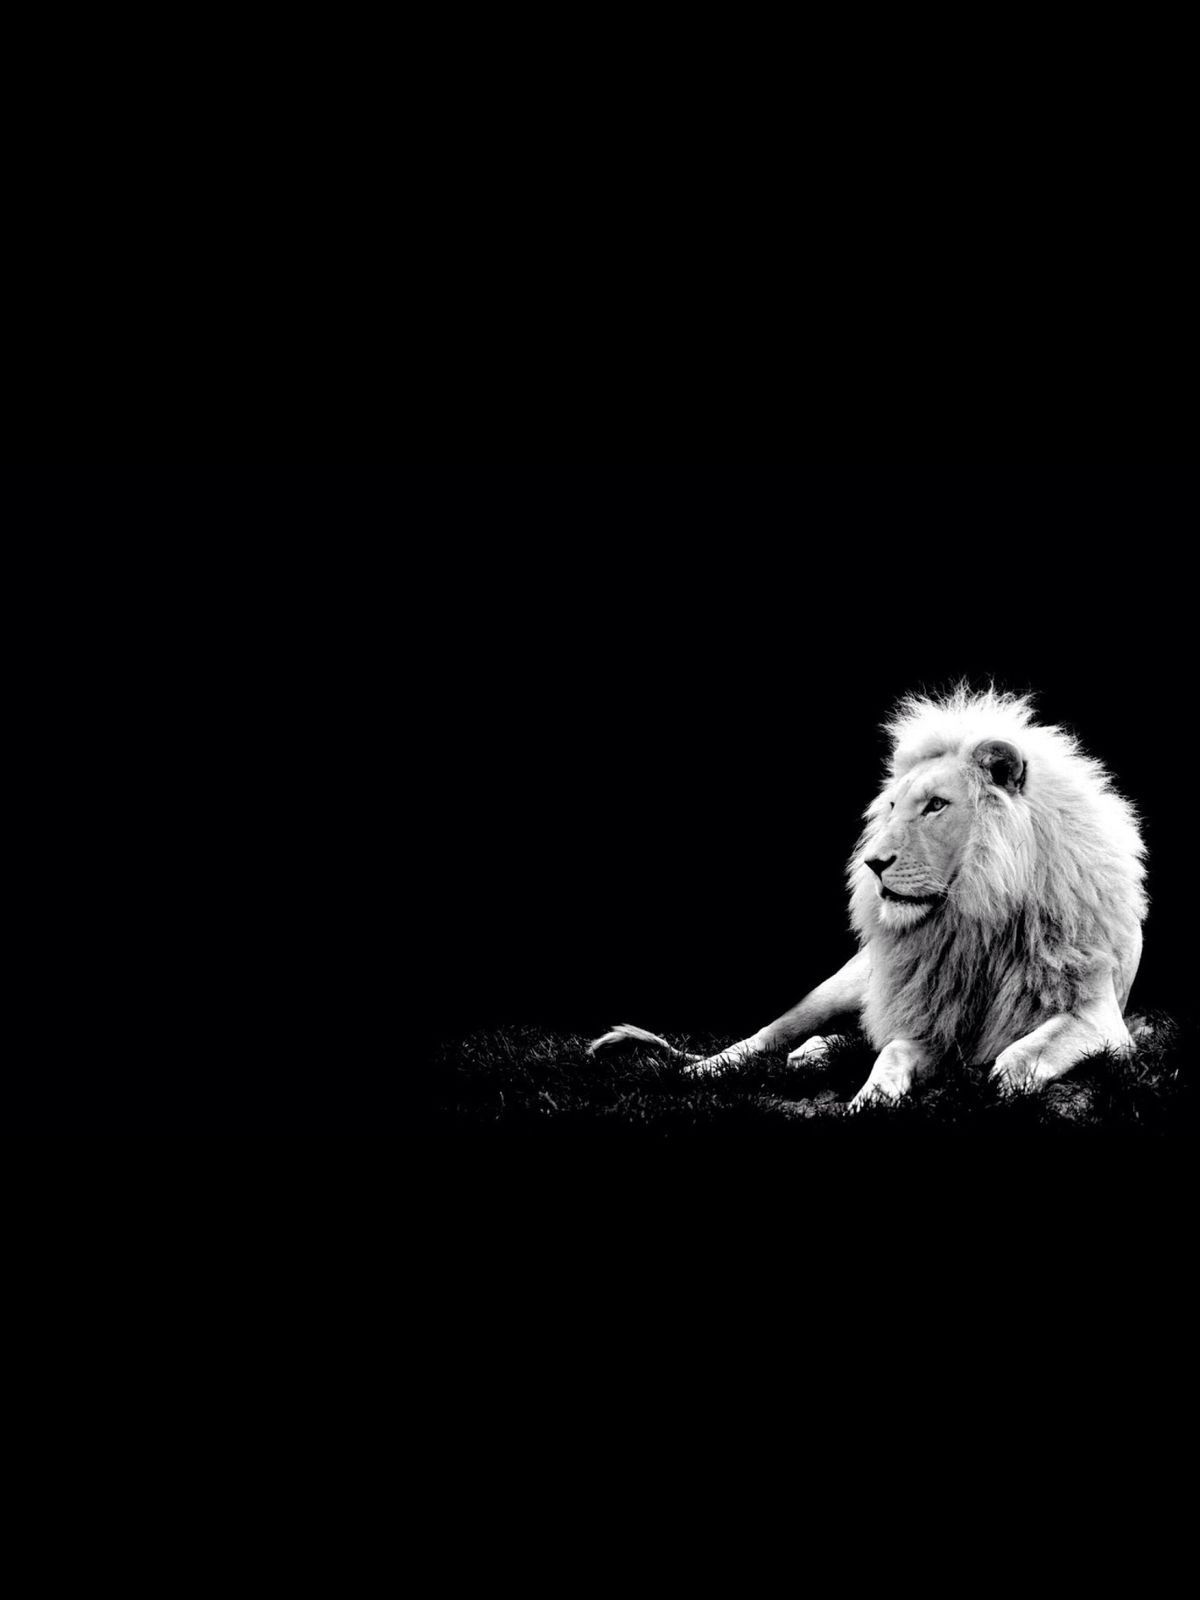 Iphone 5s wallpaper tumblr white - Lion Black And White Wallpaper Tumblr Wallpaperiphone 5